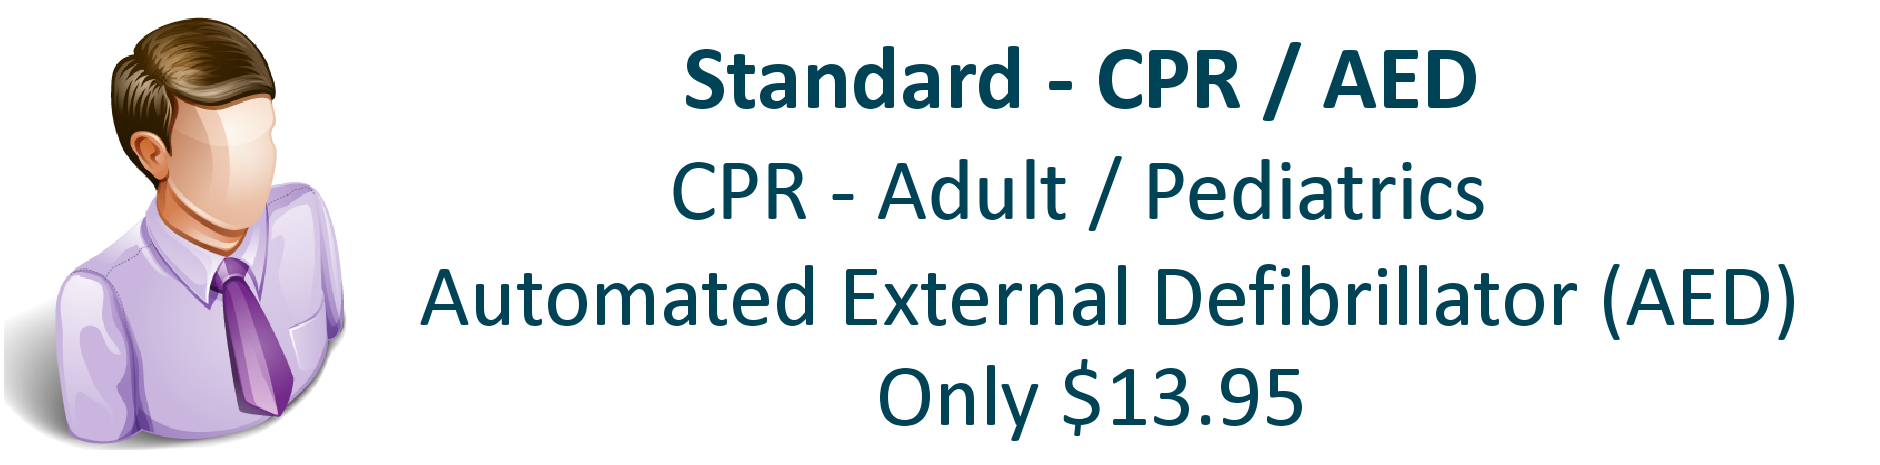 Online Cpr Aed First Aid Certification Cpr Certification Online